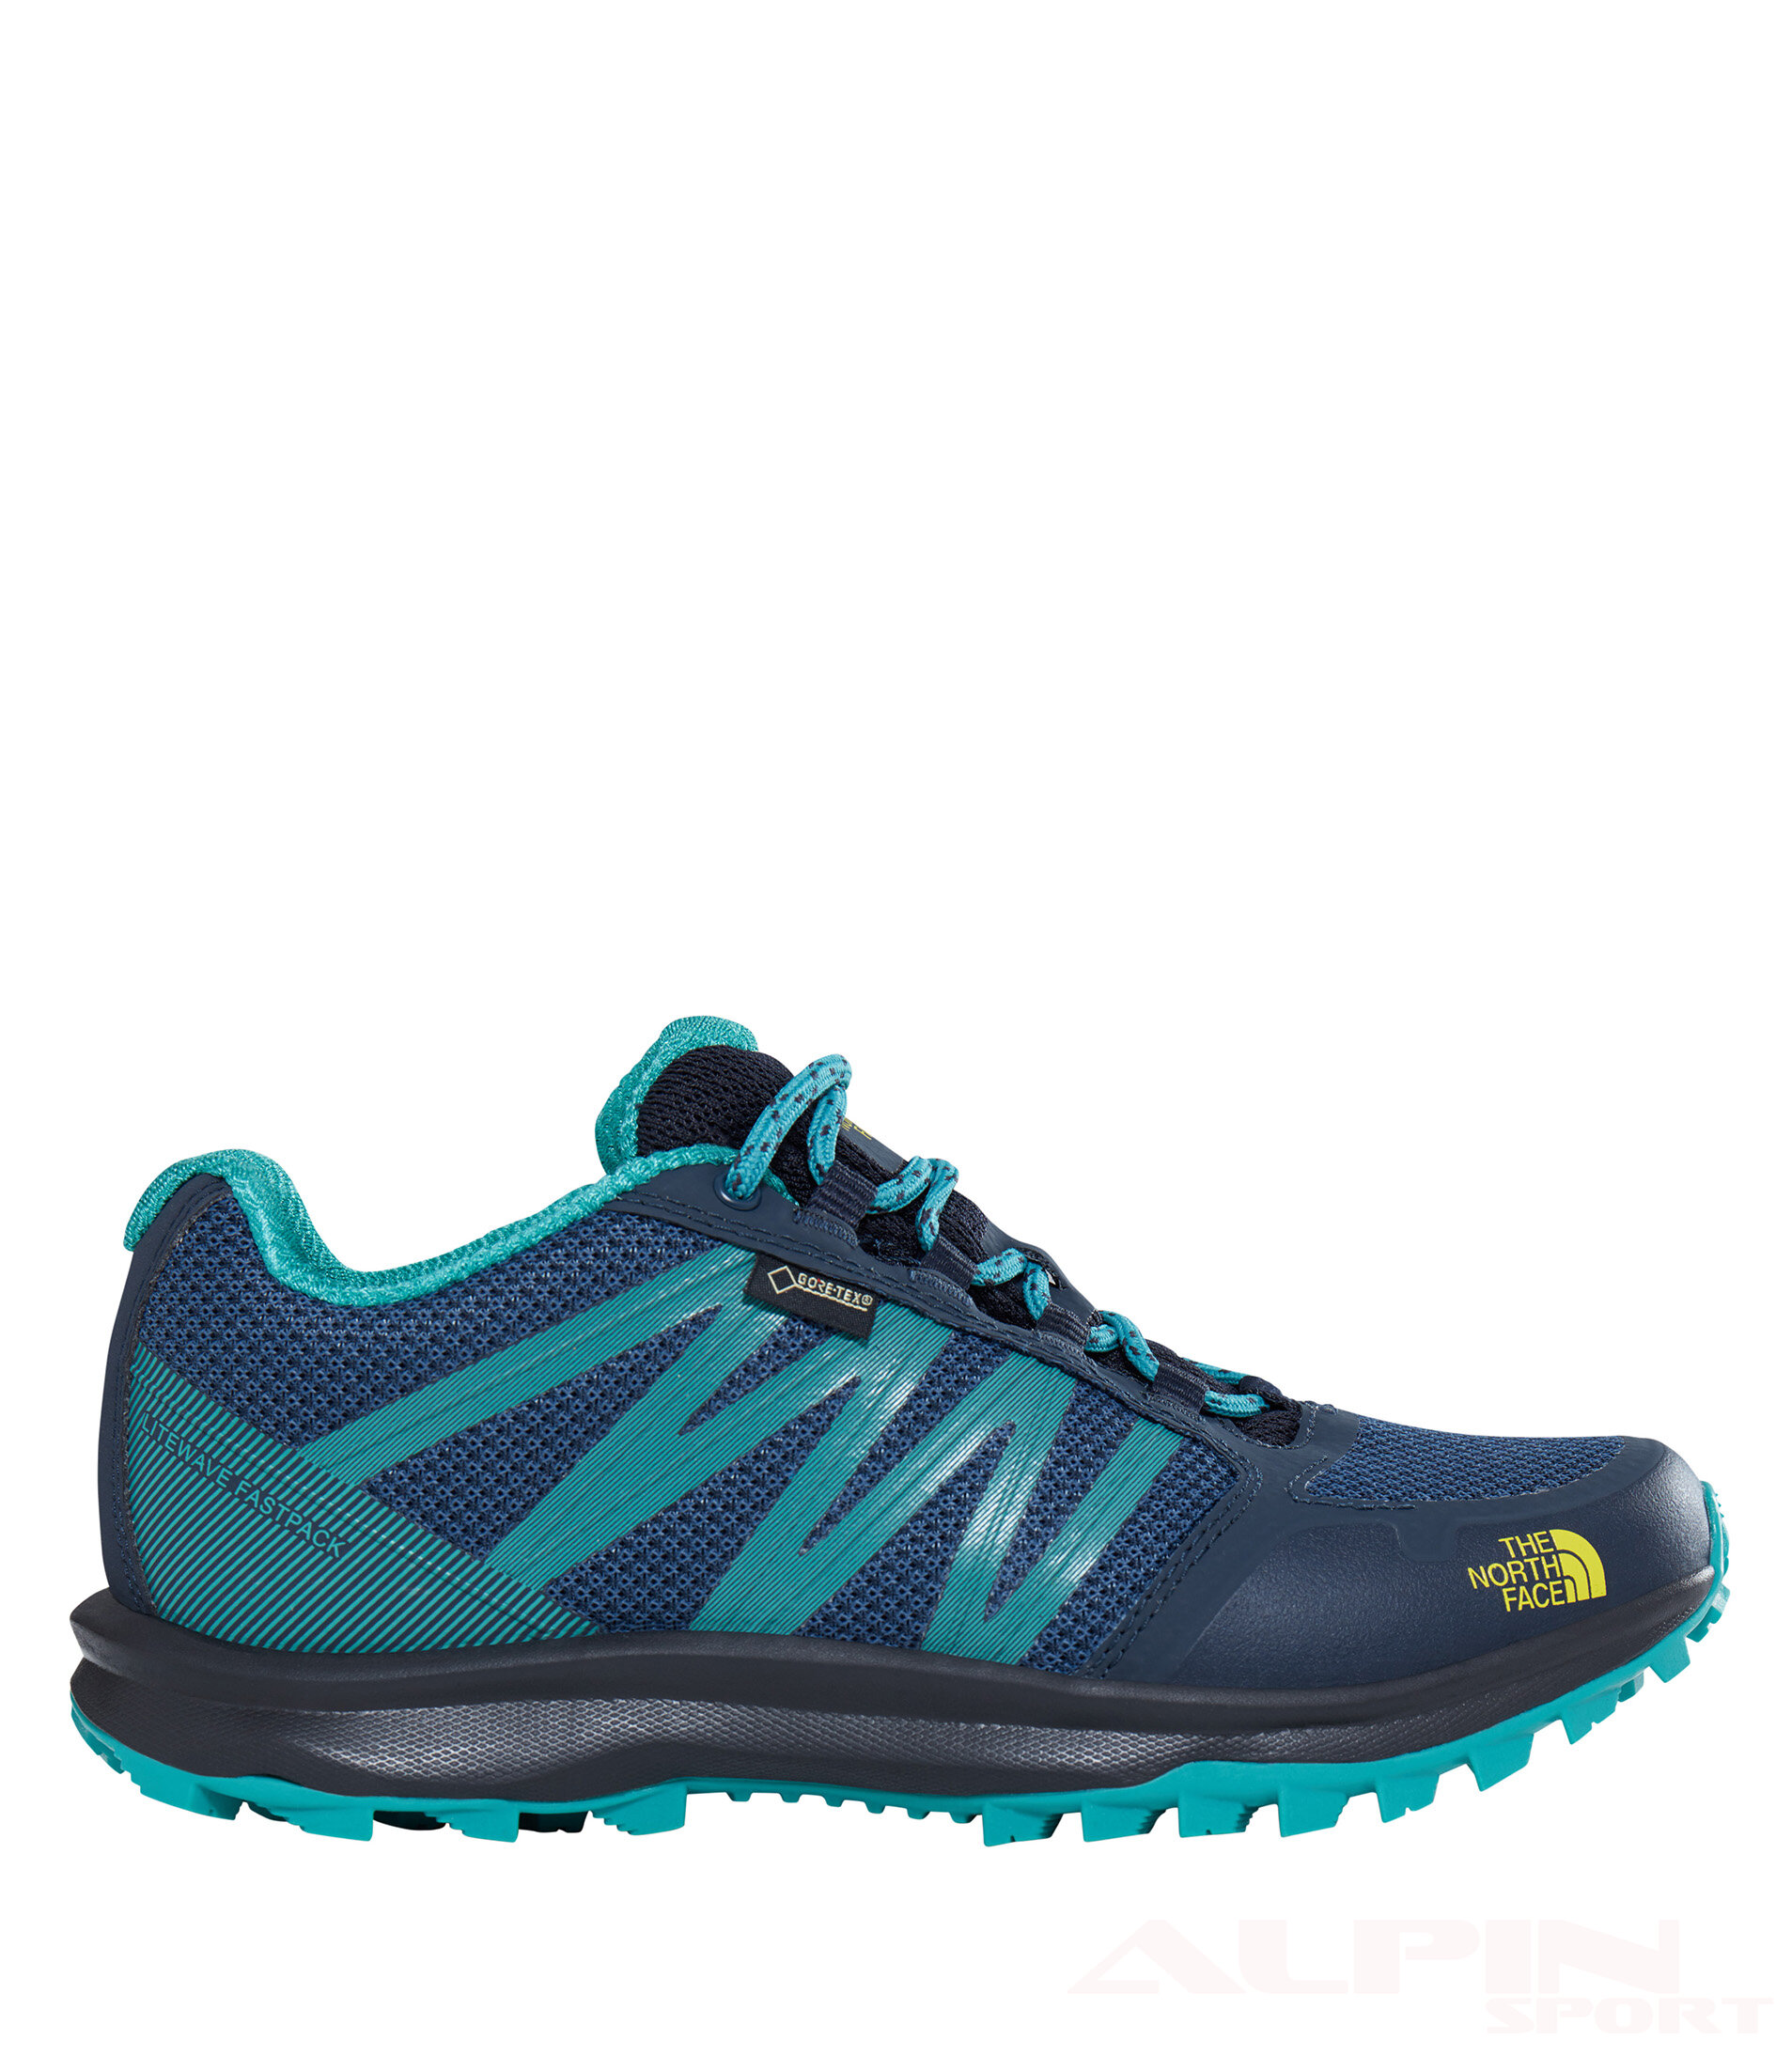 Buty damskie THE NORTH FACE Litewave Fastpack GTX 020_LO_3FX5 4GQ 0